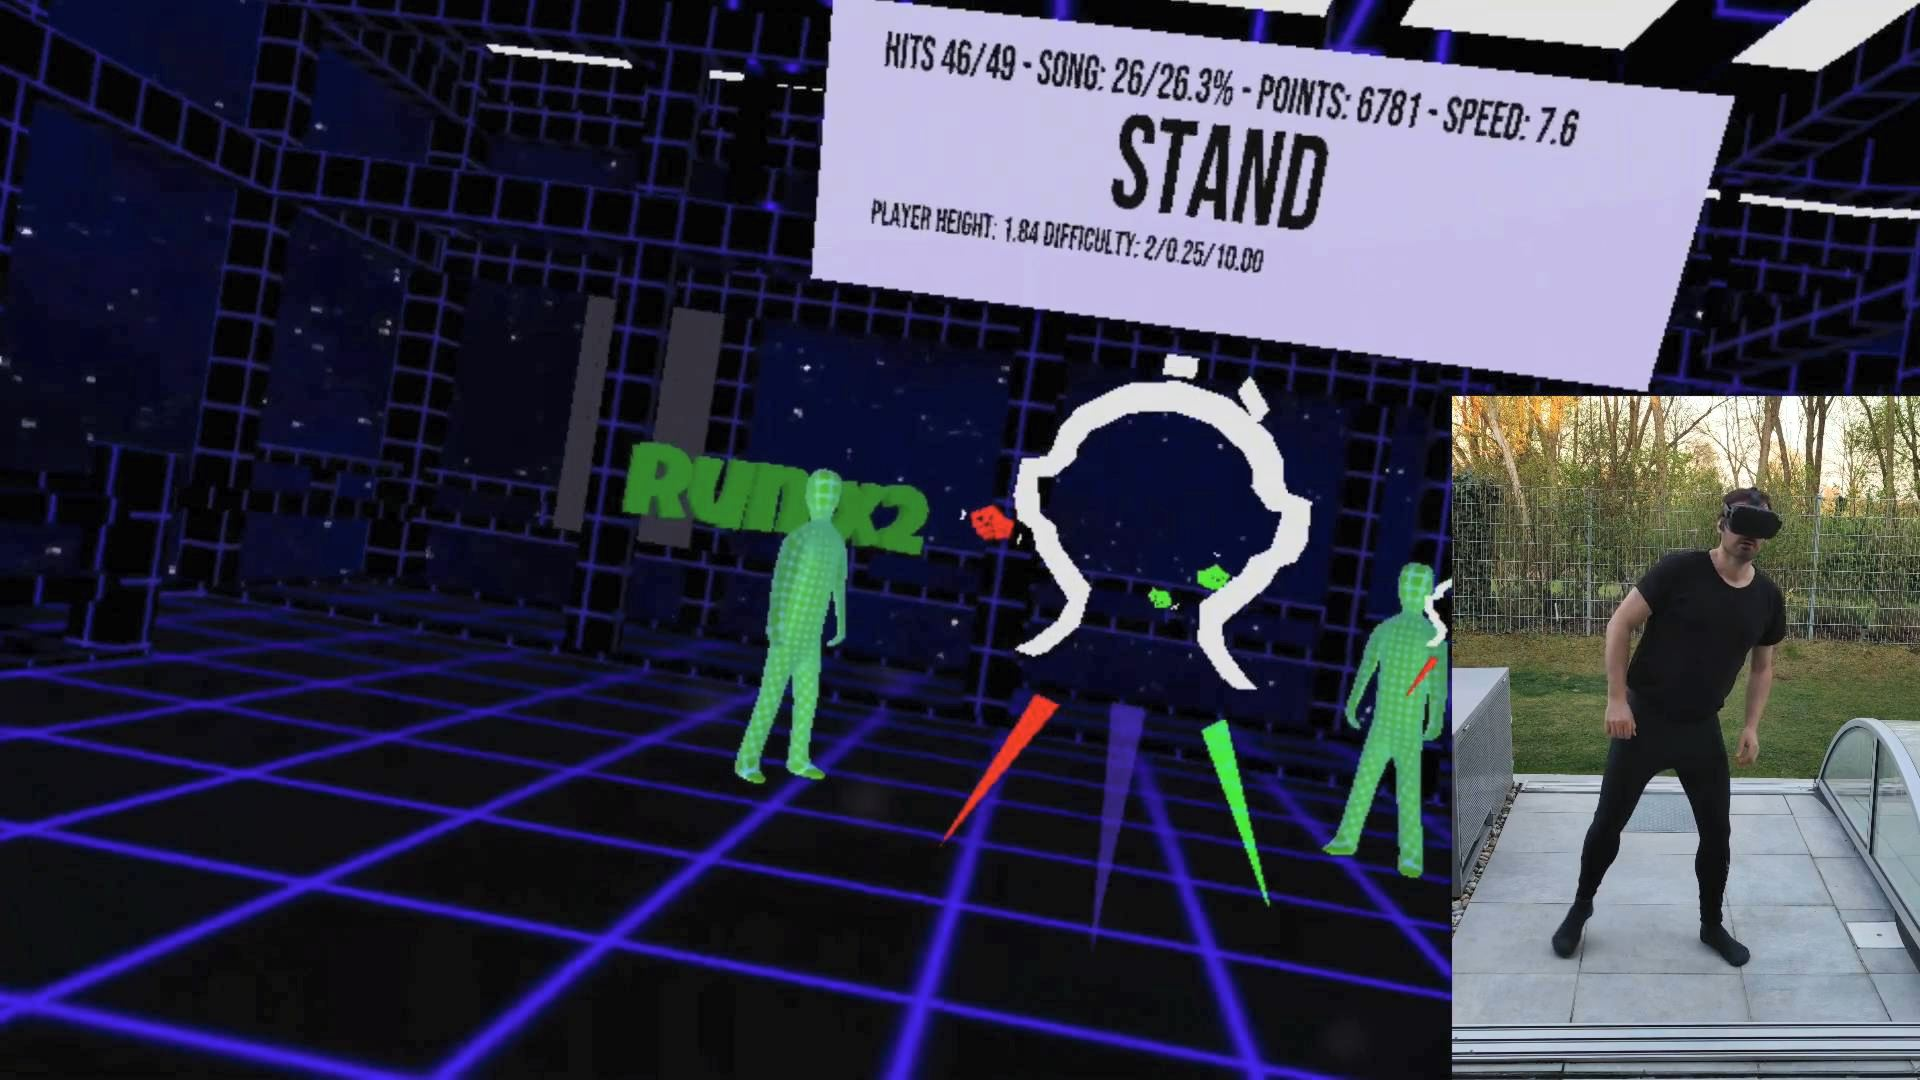 Stand head